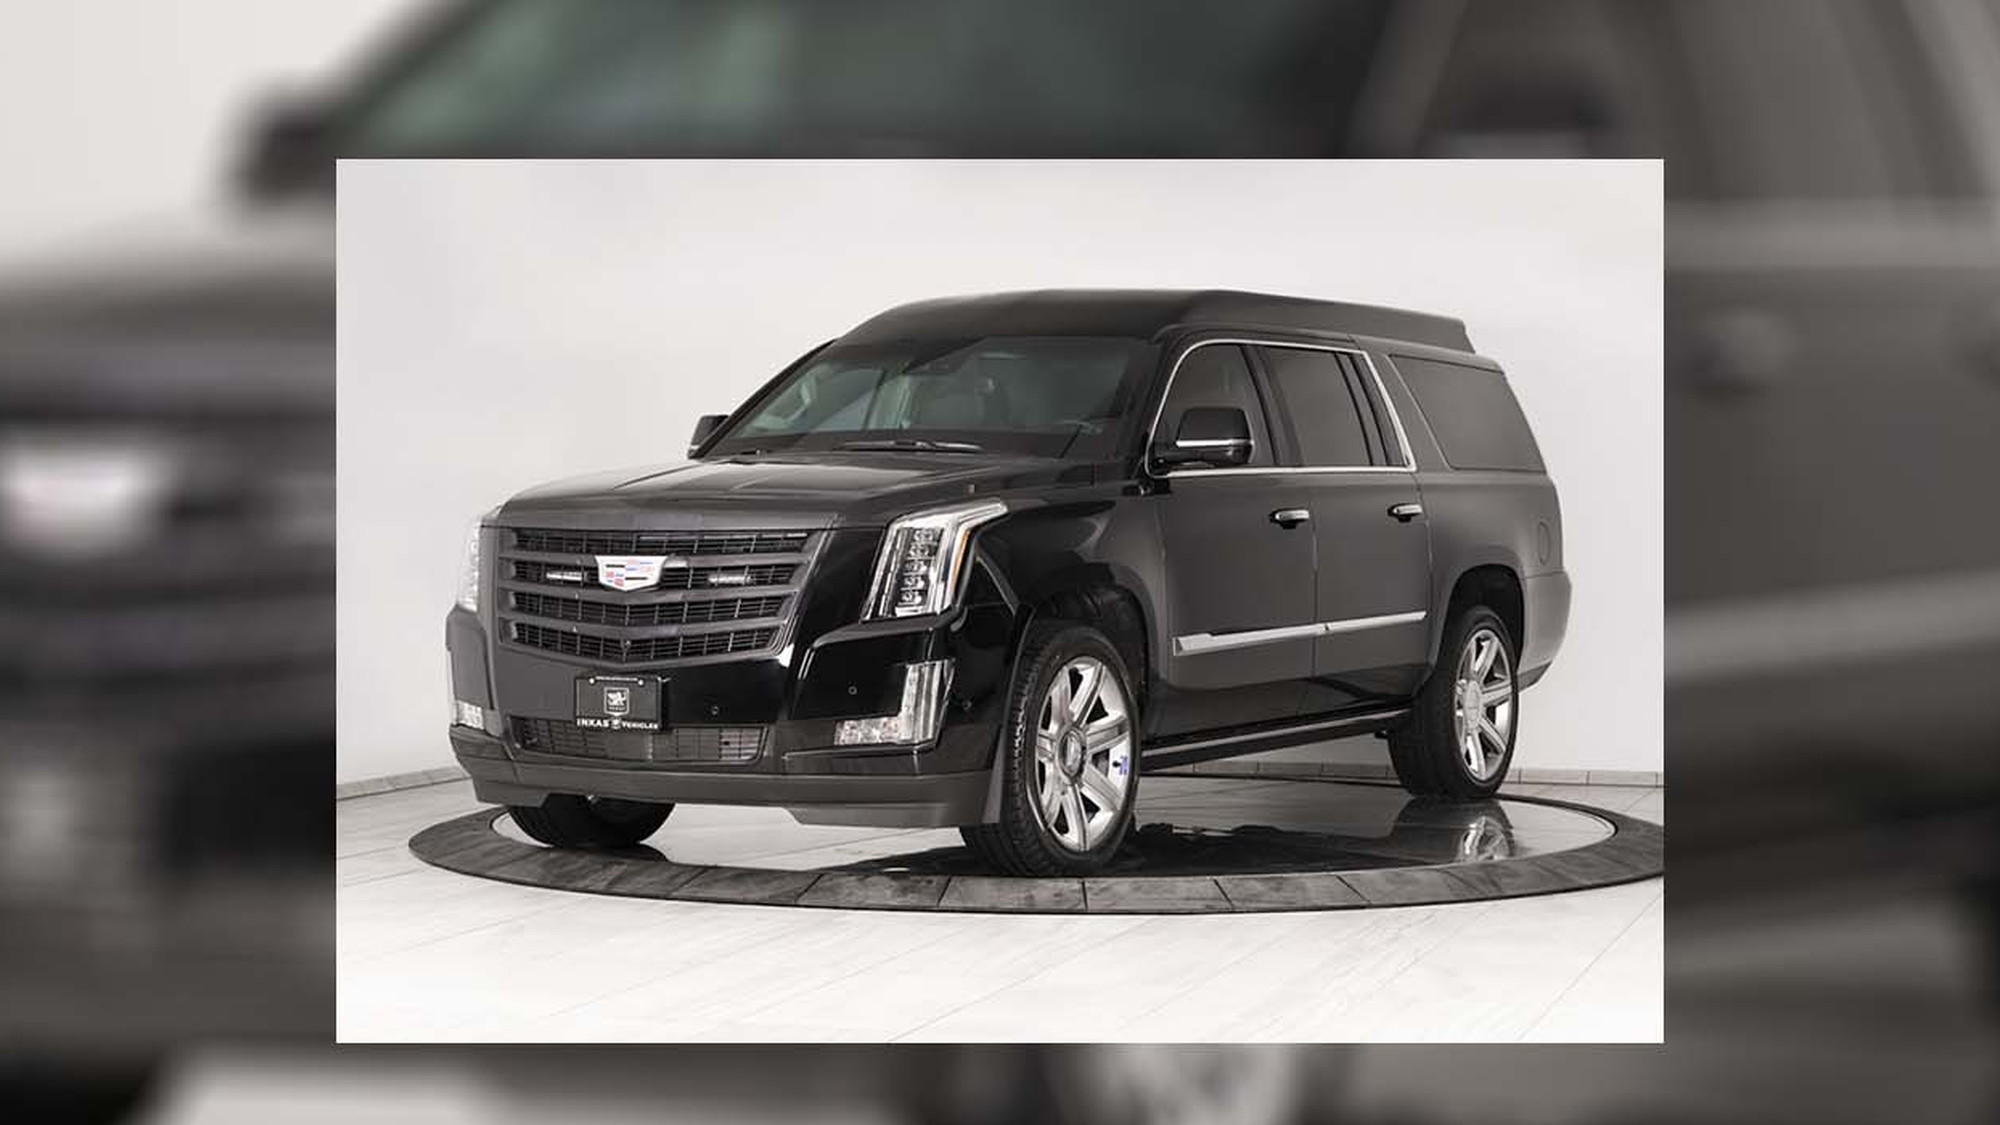 Armored 2019 Cadillac Escalade ESV by Inkas edited